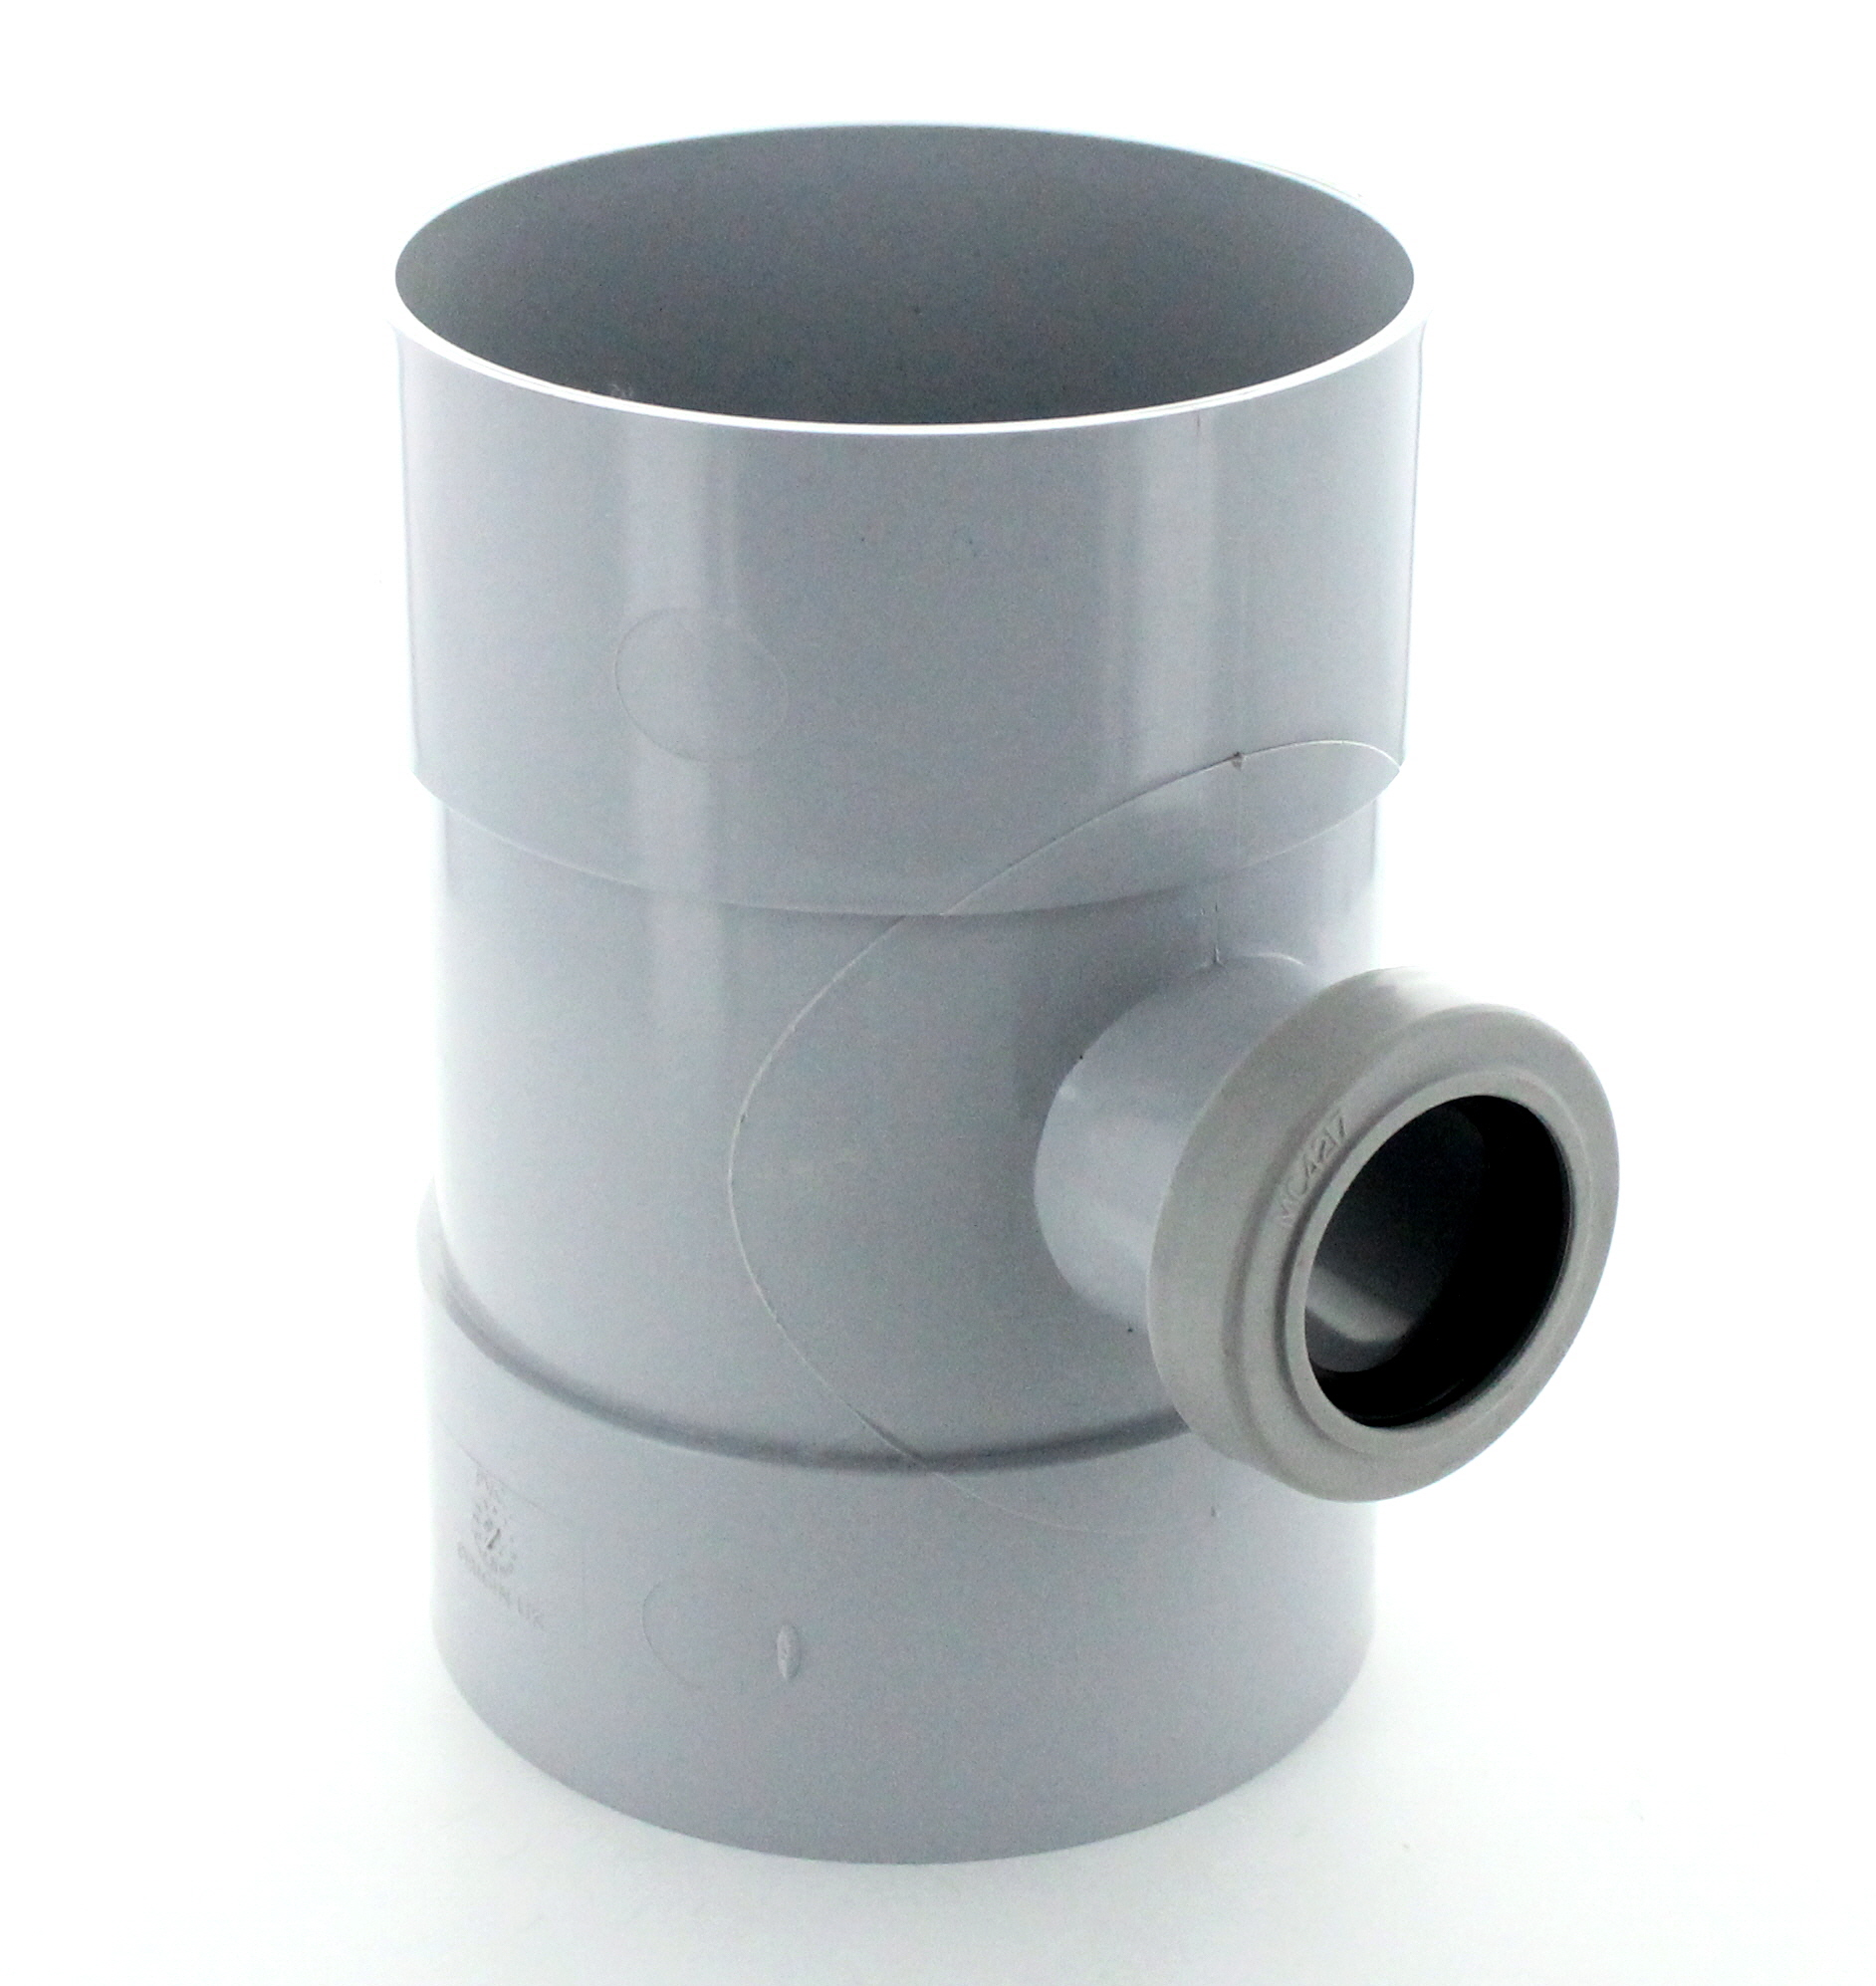 Soil pipe 32mm 40mm 50mm marley replacement seals for 90mm soil pipe